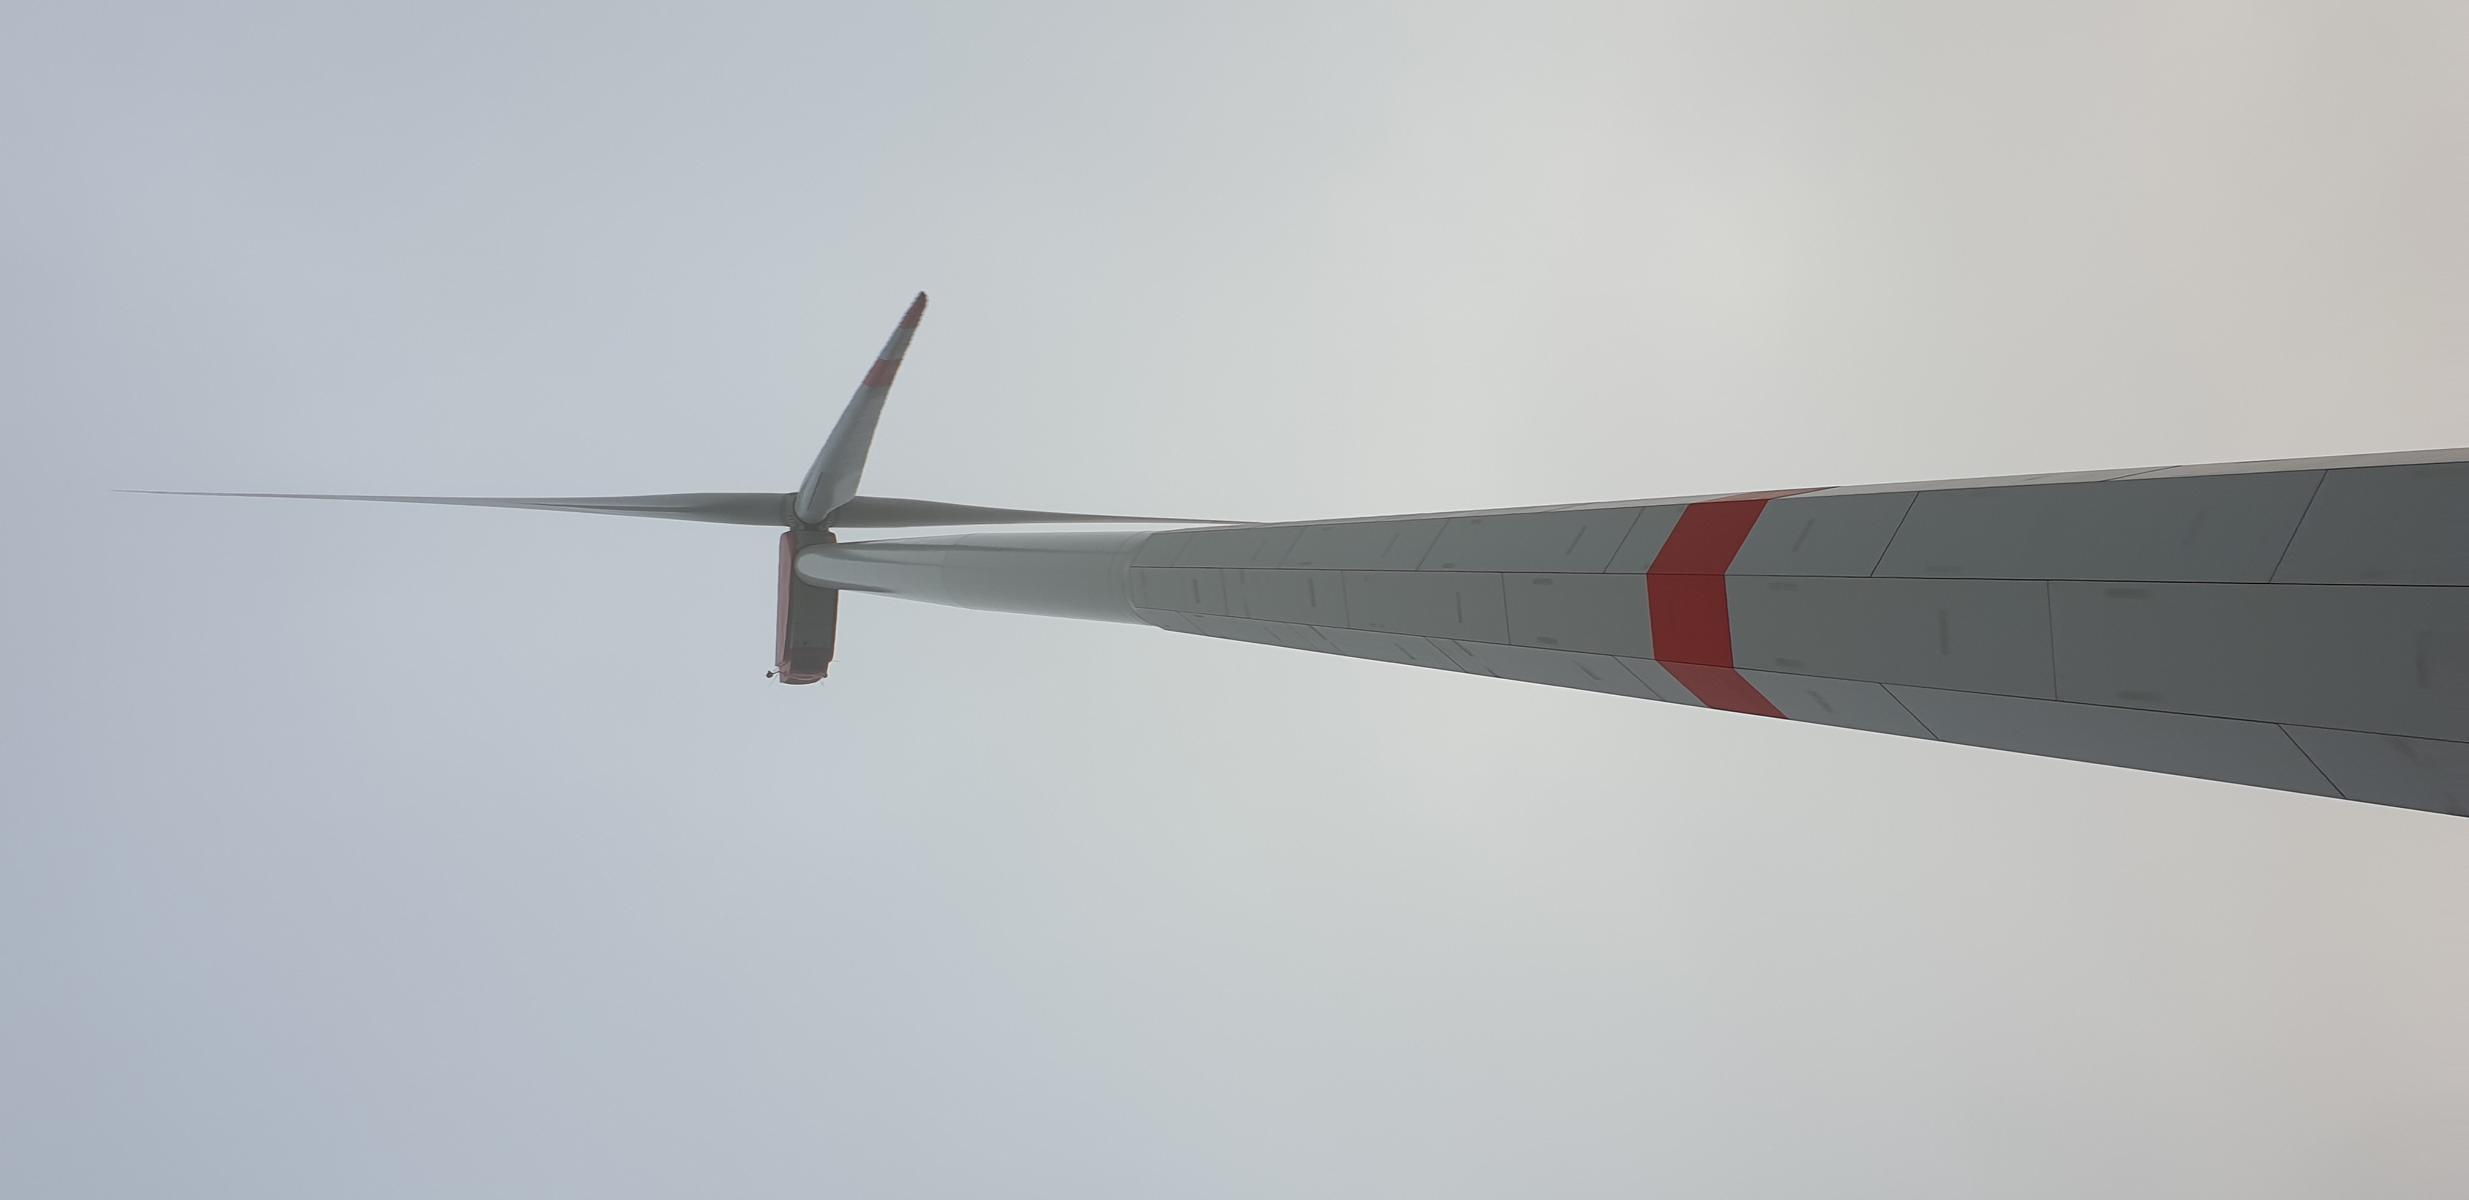 Windpark von der malsburg bei ESCHEBERG